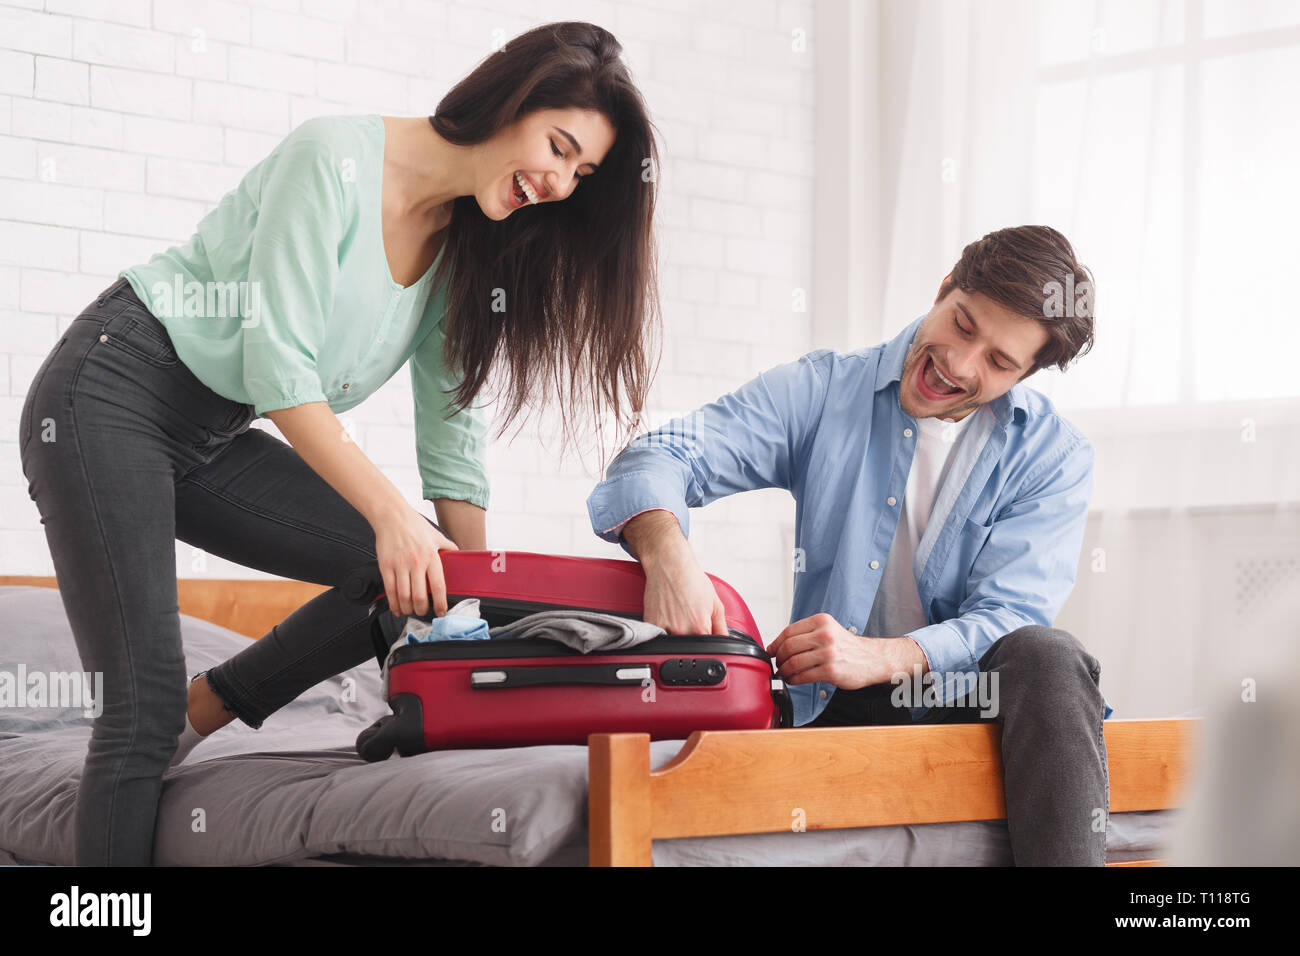 Couple trying to close full suitcase in bedroom Stock Photo